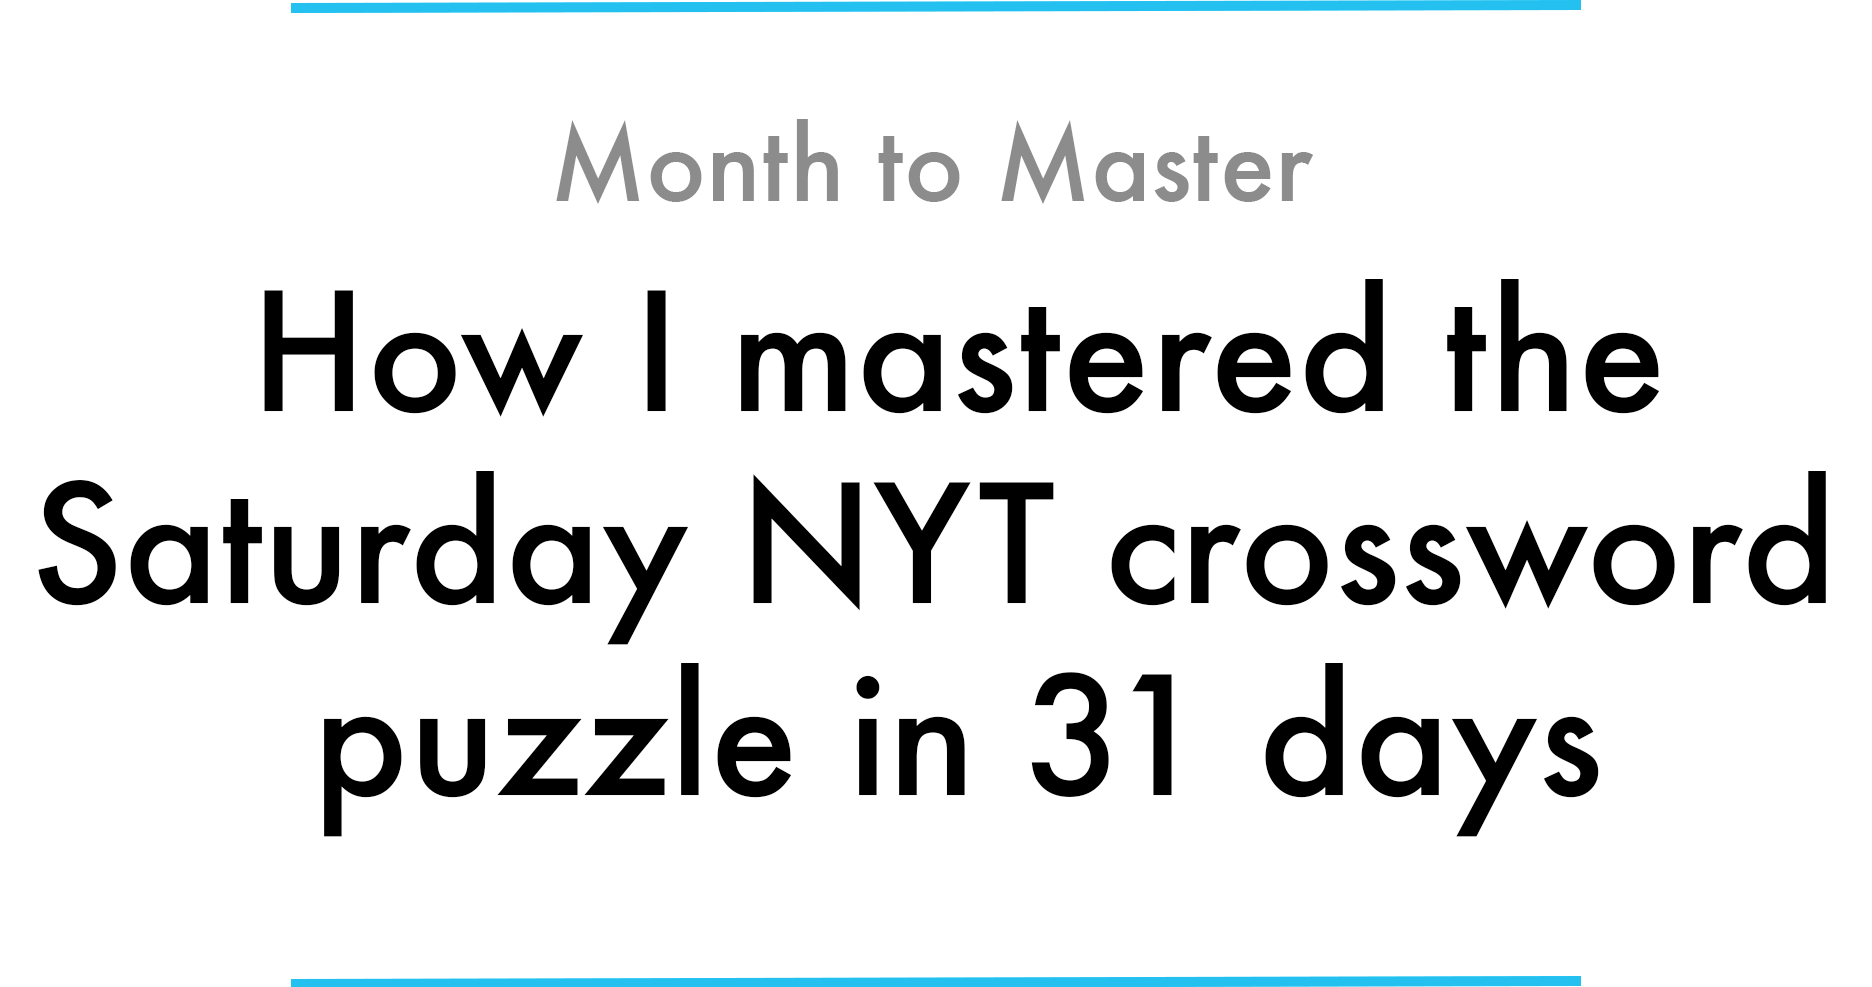 image regarding Worlds Hardest Crossword Puzzle Printable called How I mastered the Saay NYT crossword puzzle in just 31 times